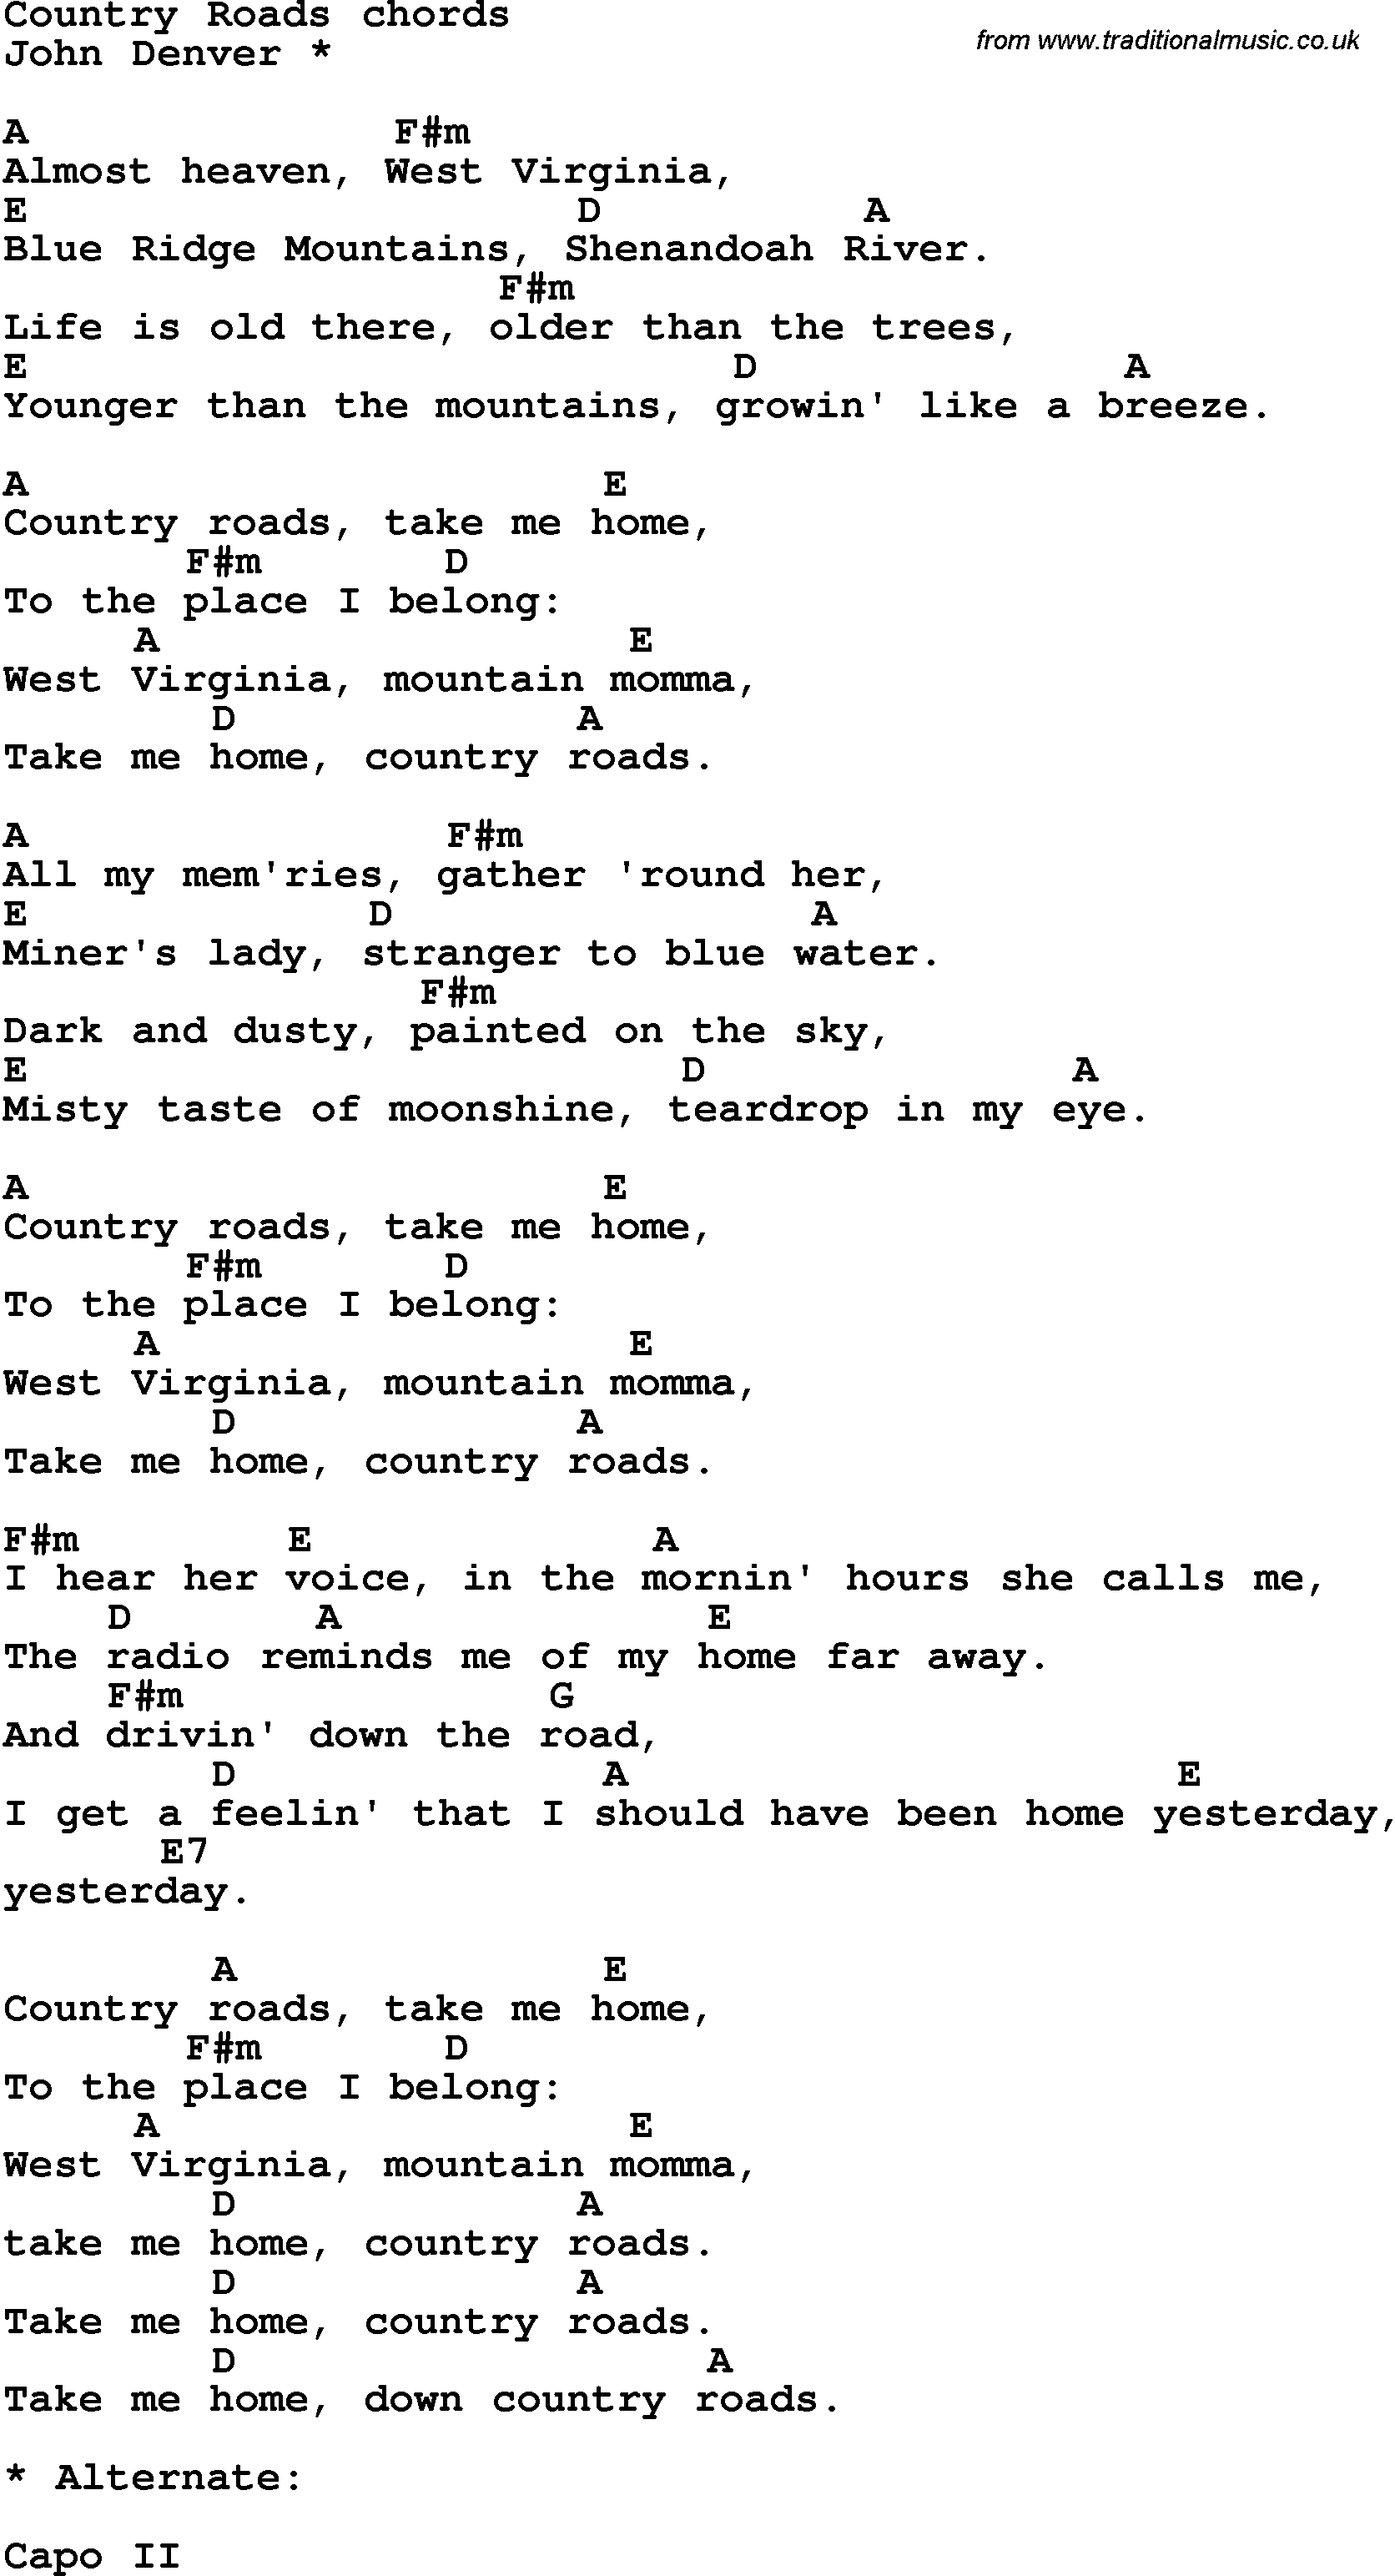 song lyrics with guitar chords for country roads guitar chords in 2019 guitar chords for. Black Bedroom Furniture Sets. Home Design Ideas